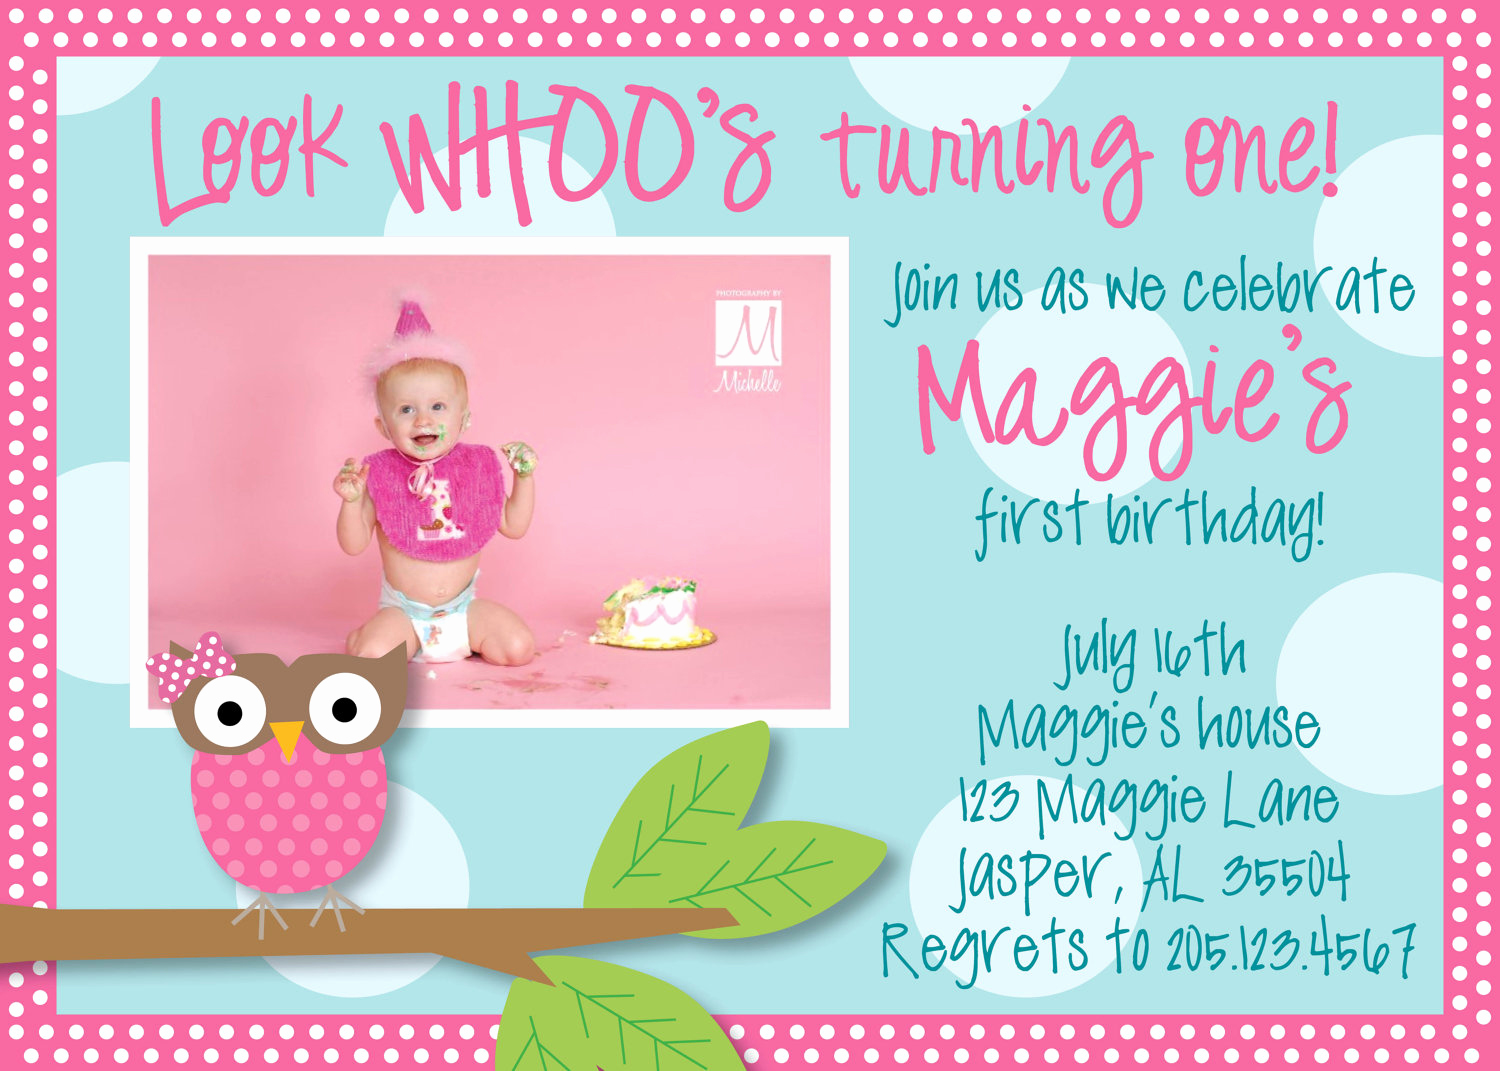 1st Birthday Invitation Ideas Beautiful Owl 1st Birthday Invitations Ideas – Bagvania Free